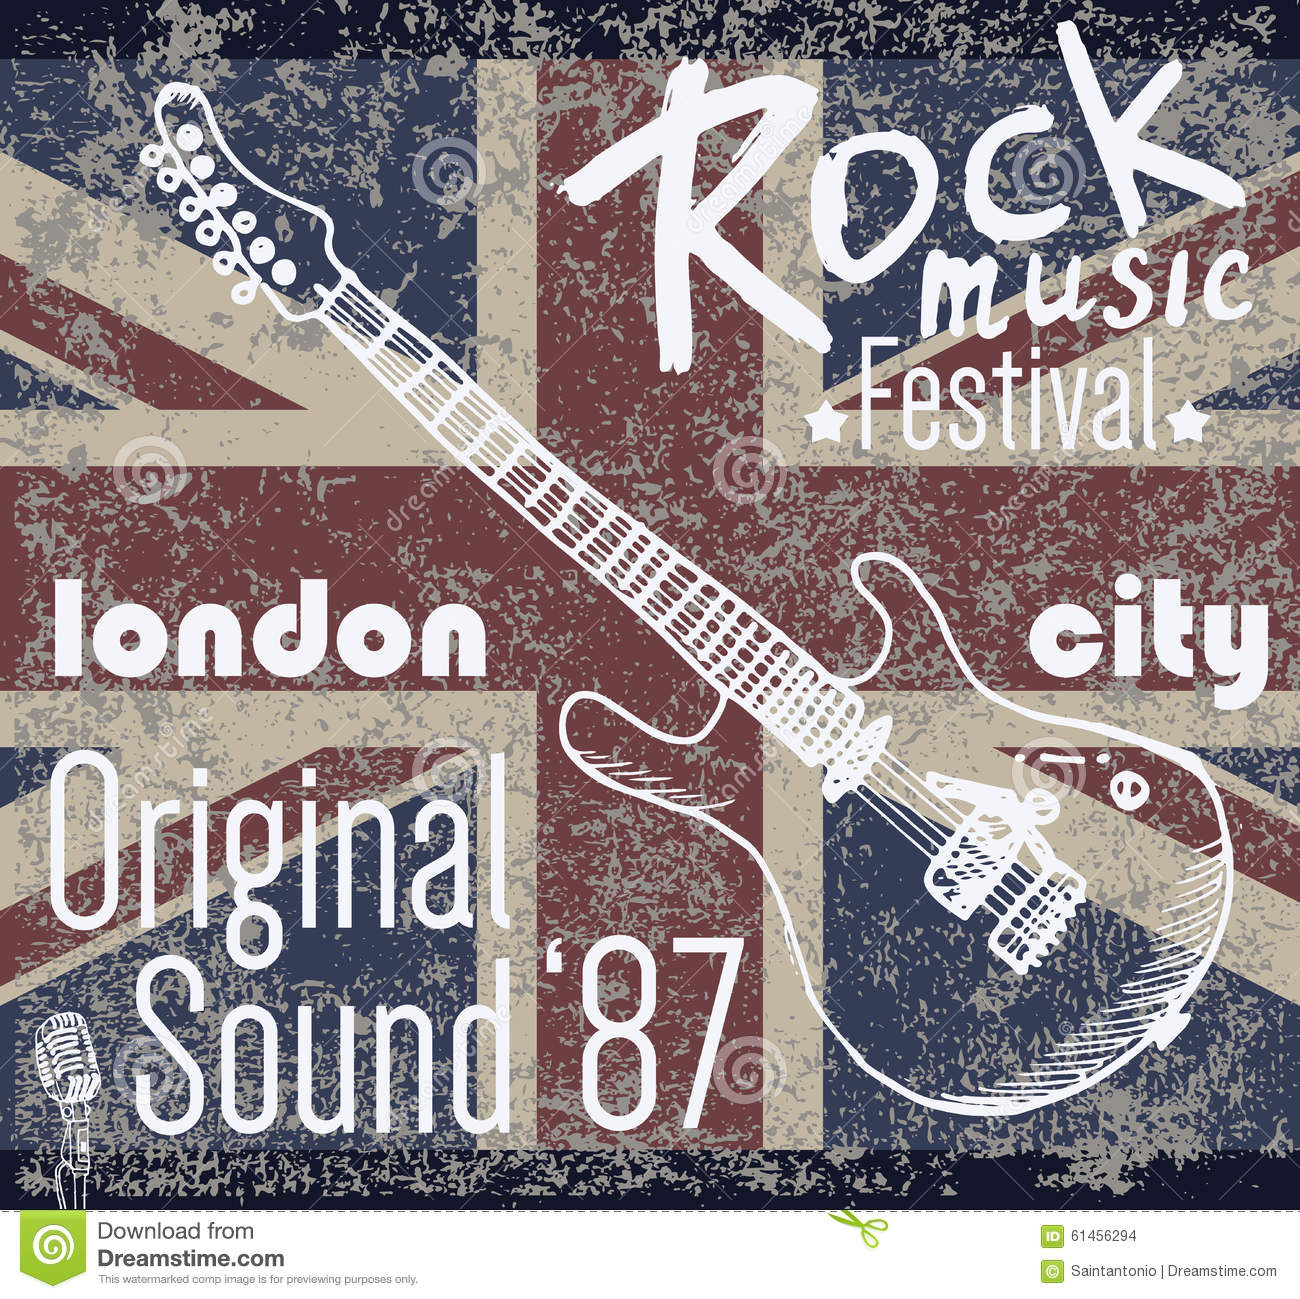 T-shirt Printing design, typography graphics, London Rock festival vector illustration with grunge flag and hand drawn sketch gu